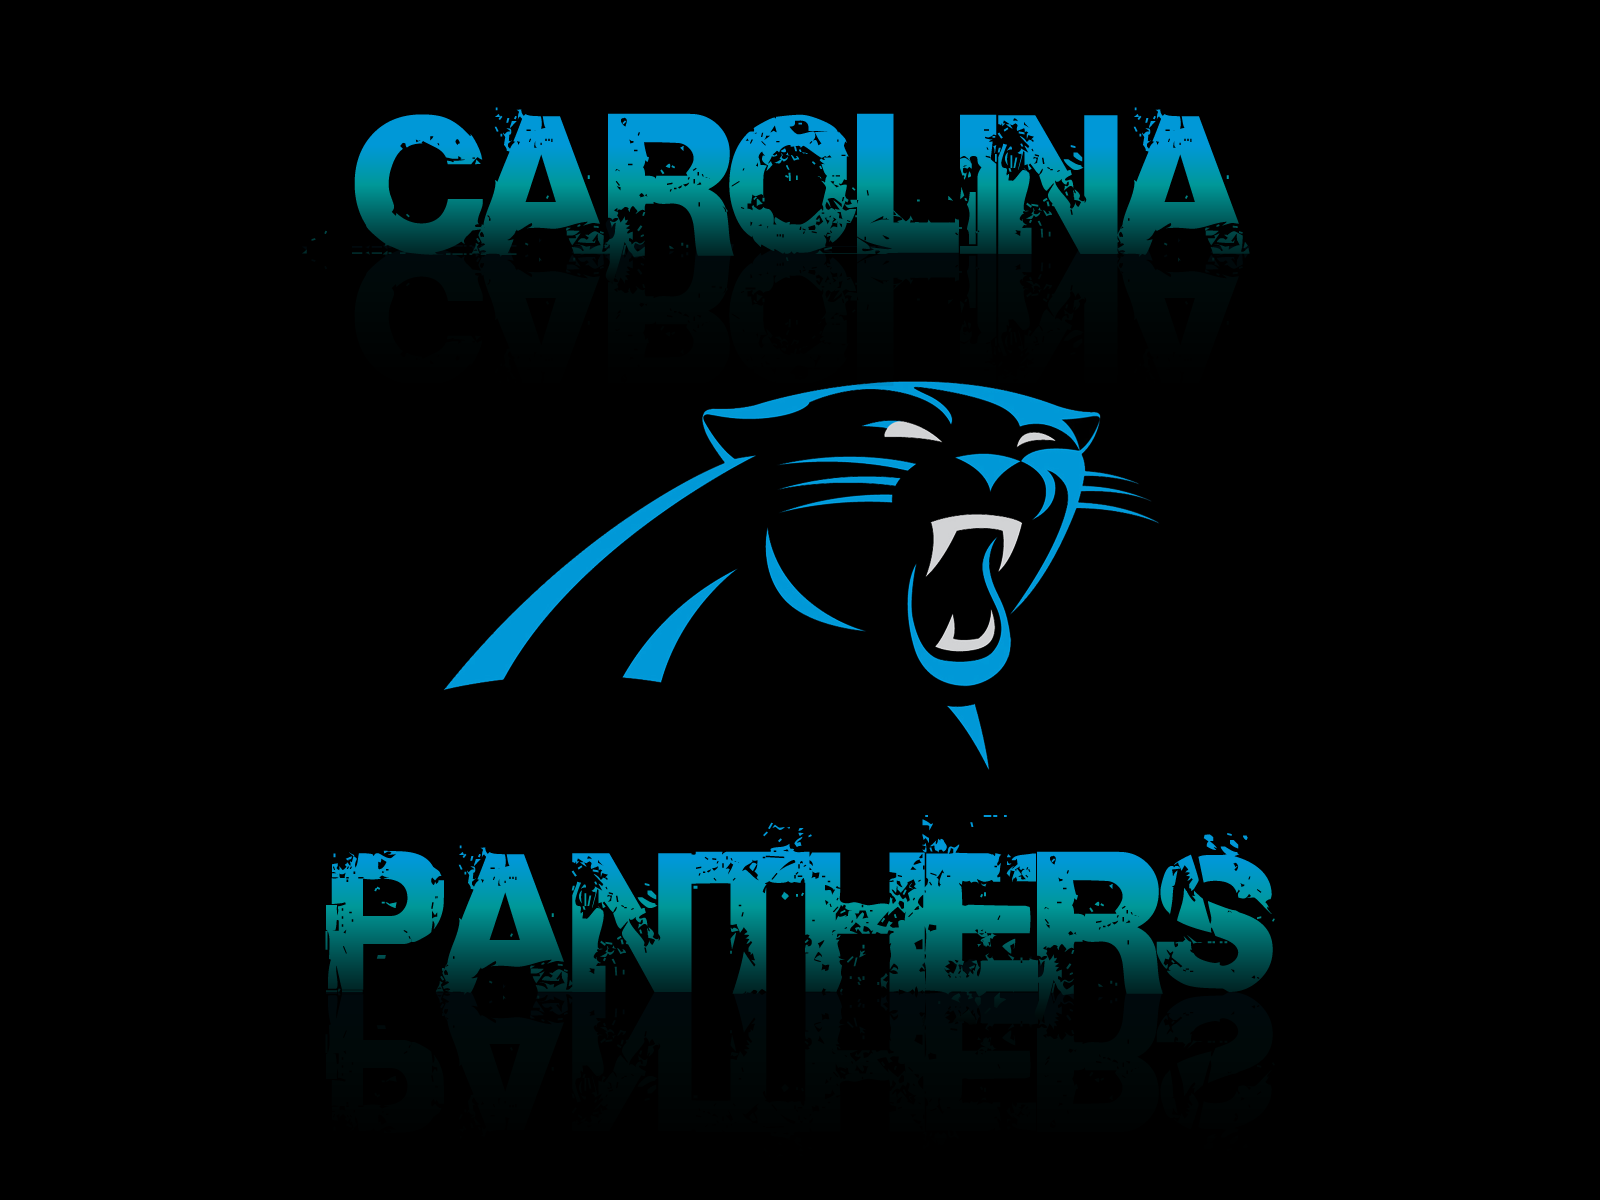 carolina panthers logo wallpaper  Carolina Panthers Logo Backgrounds Free Download | wallpaper.wiki